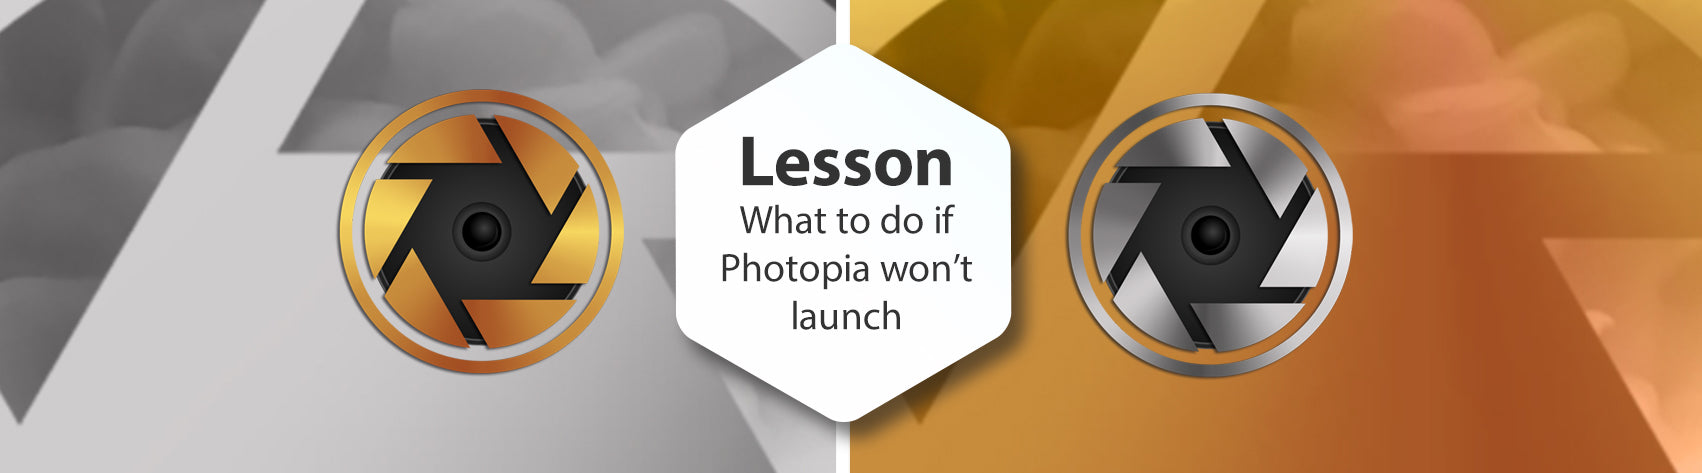 Lesson - What to do if Photopia won't launch